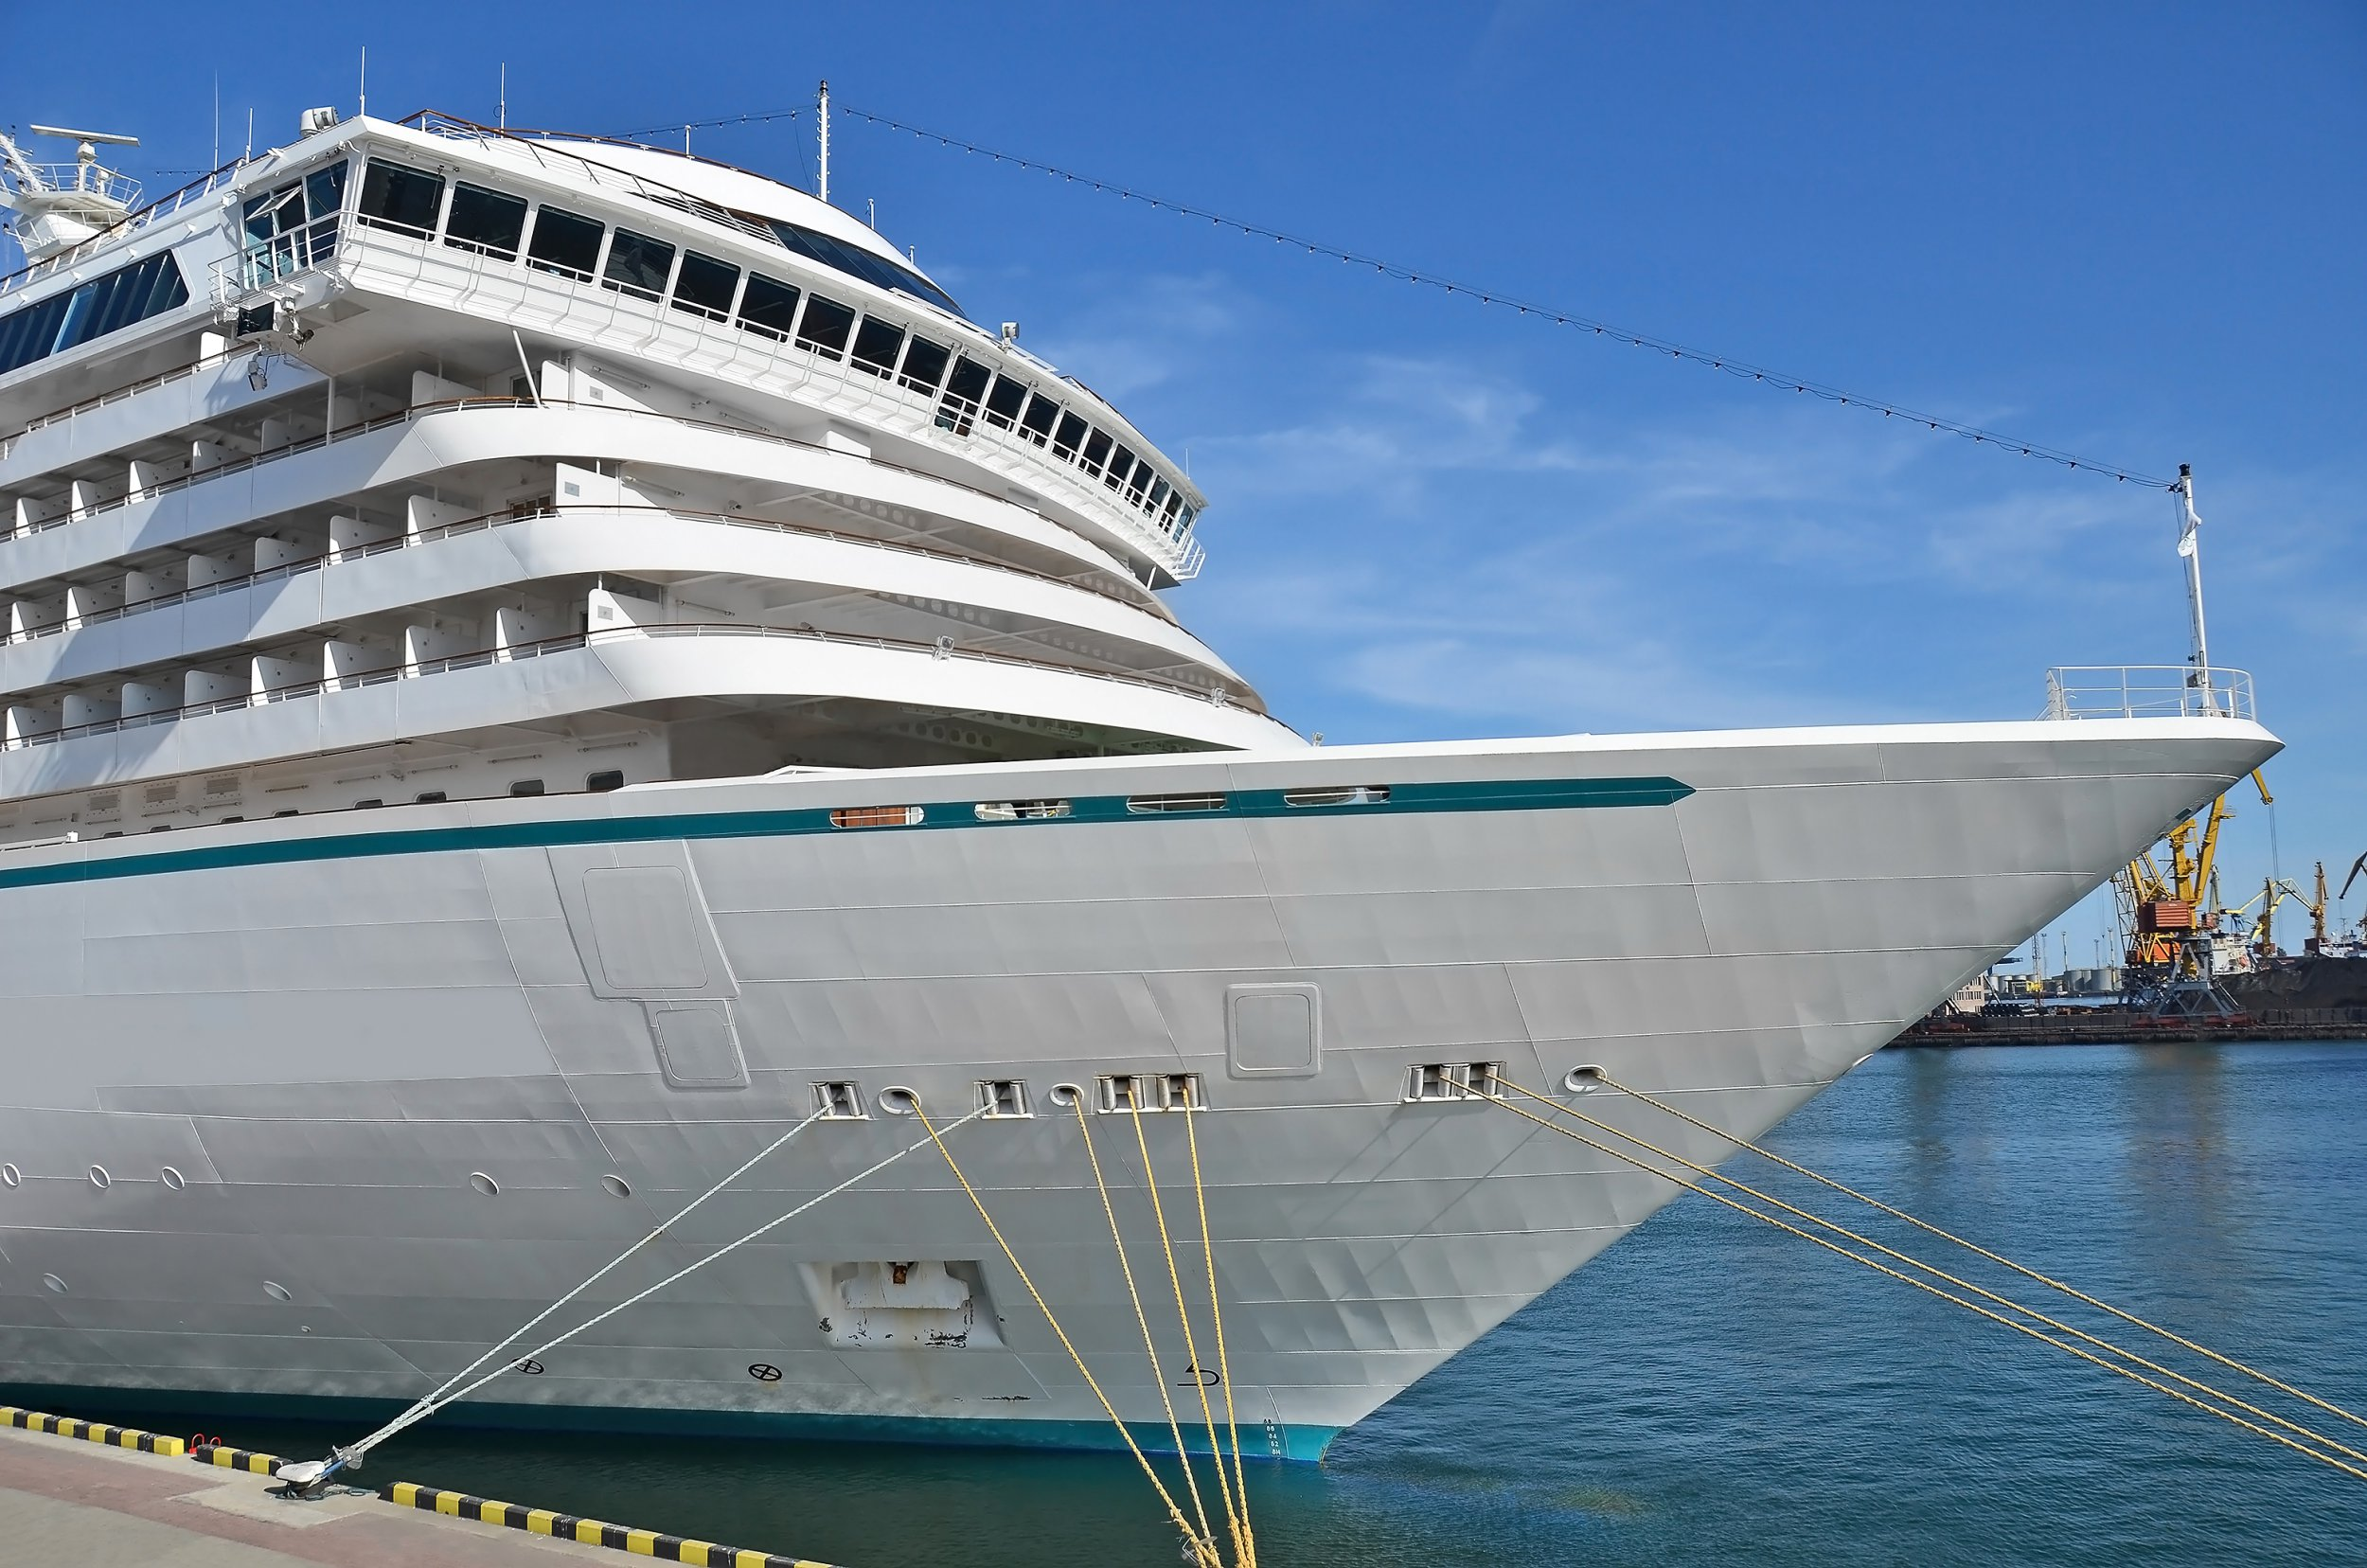 British girl, 17, 'raped on Mediterranean cruise ship during family holiday'